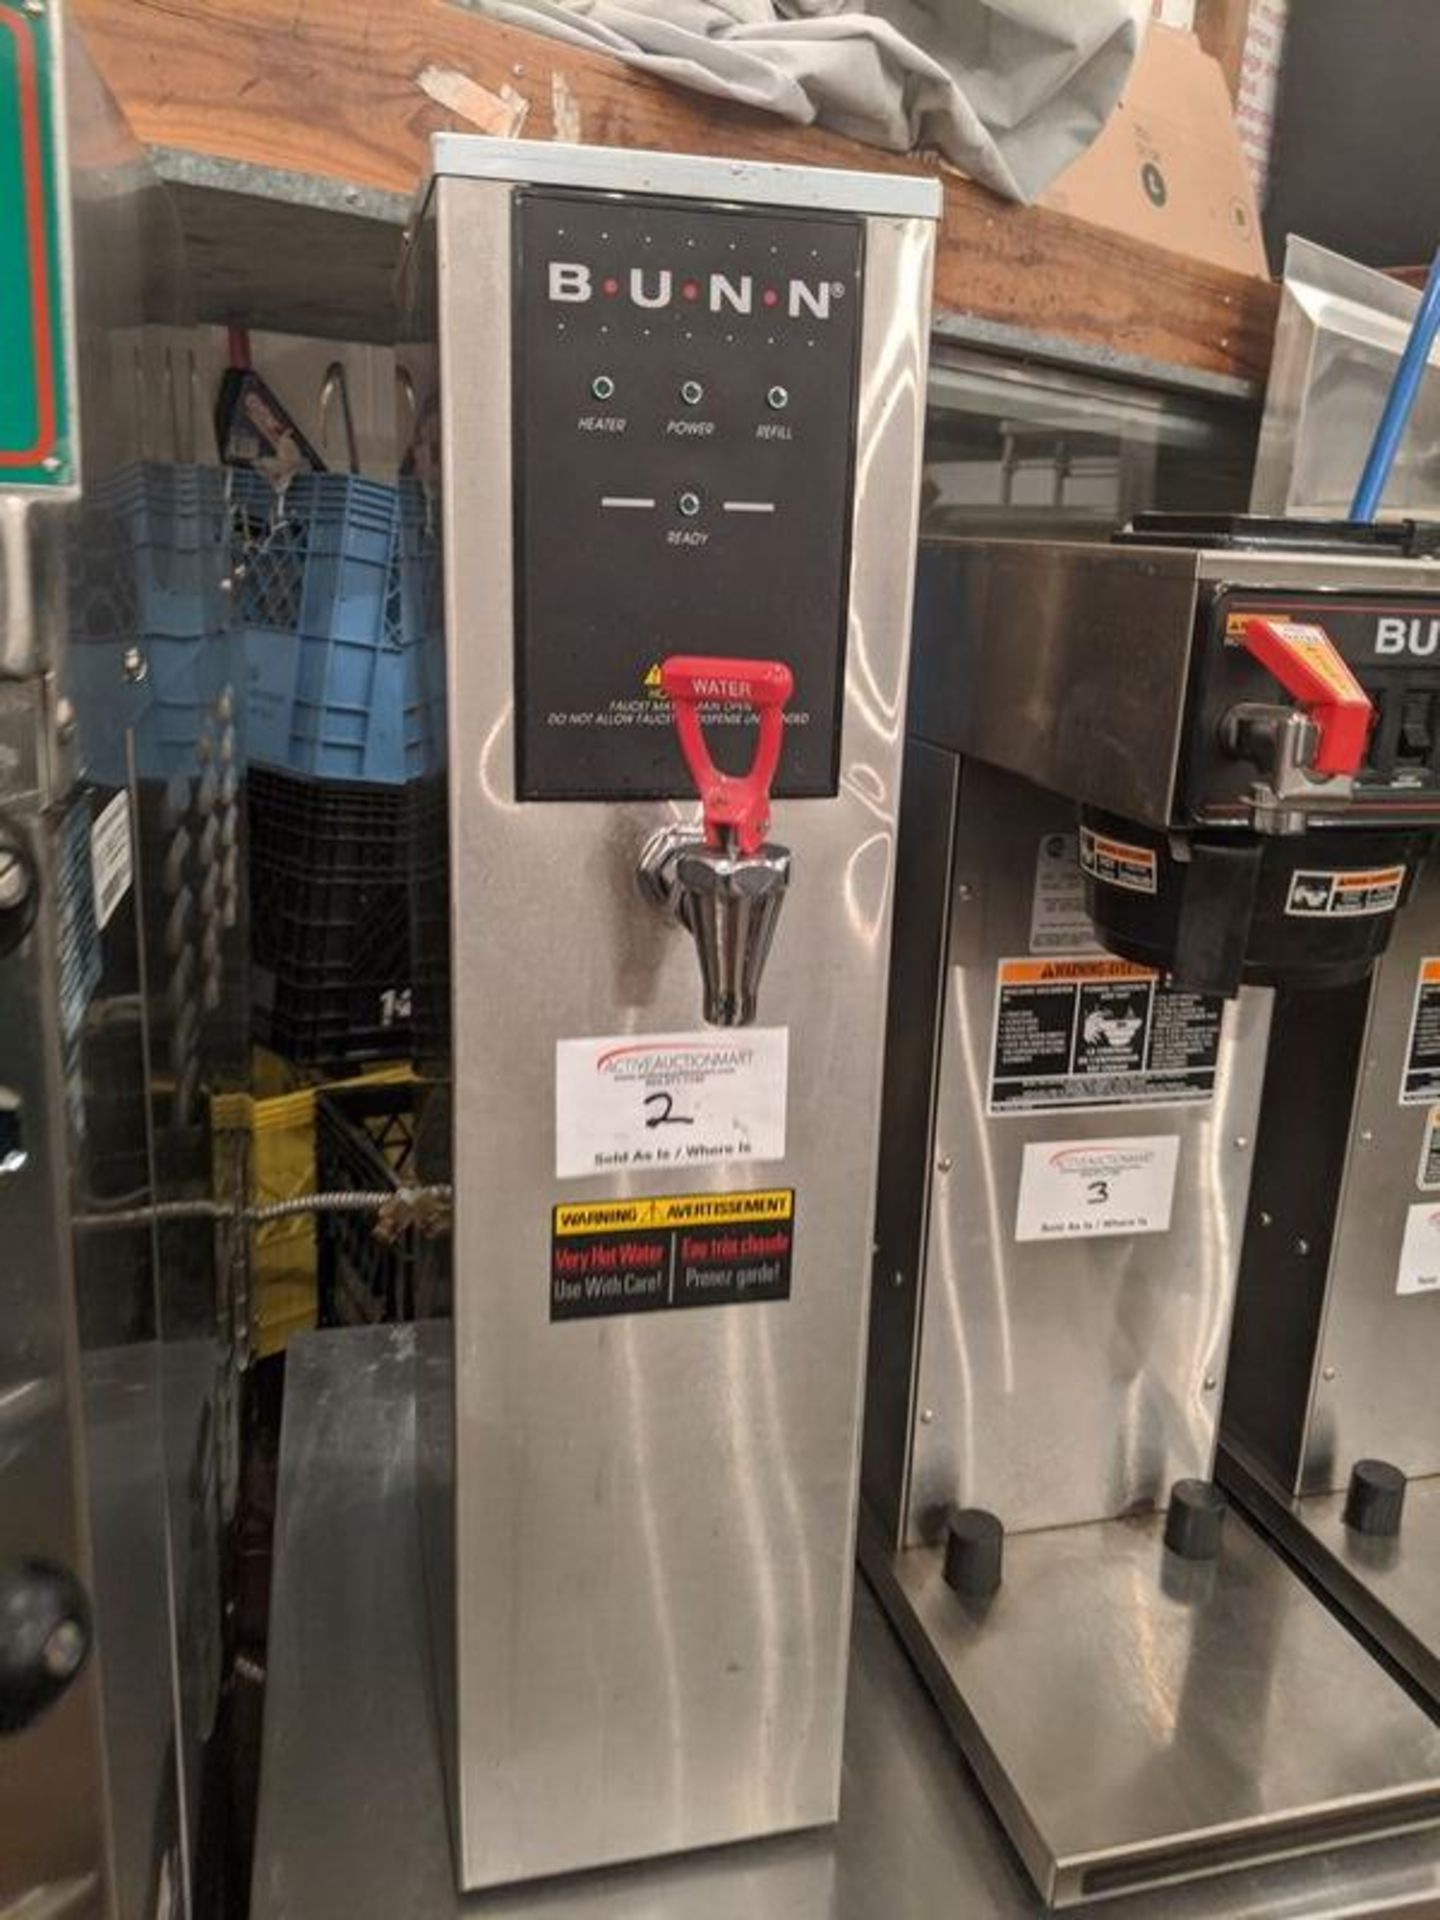 Lot 2 - Bunn Hot Water Dispenser